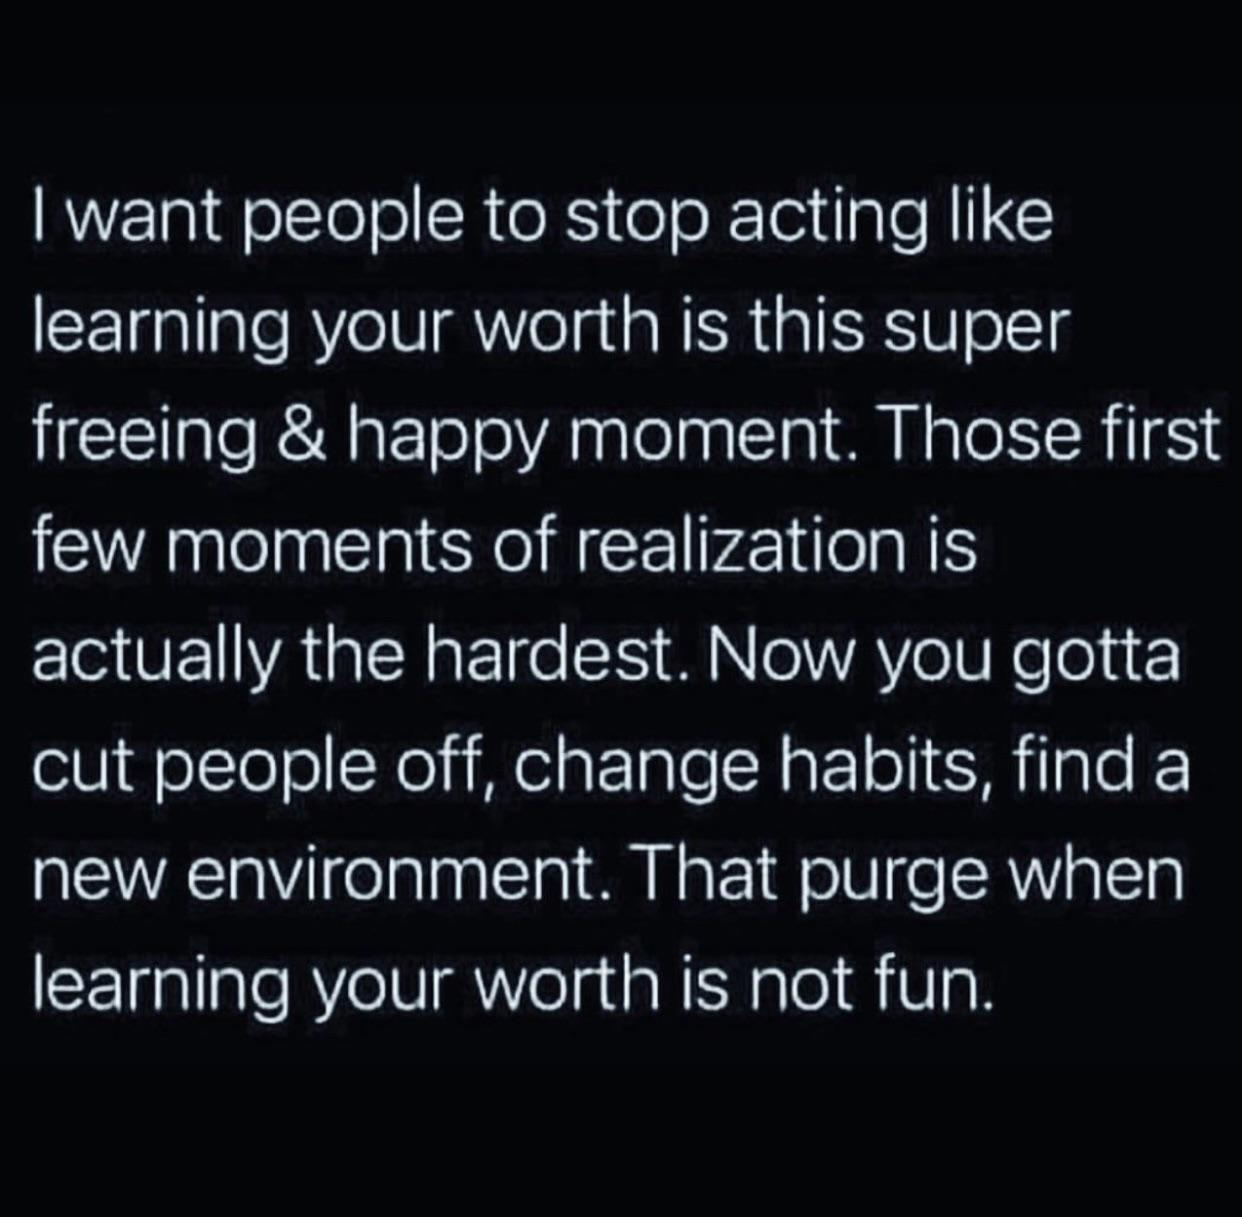 [Image] Learning your worth. It's not an easy journey.